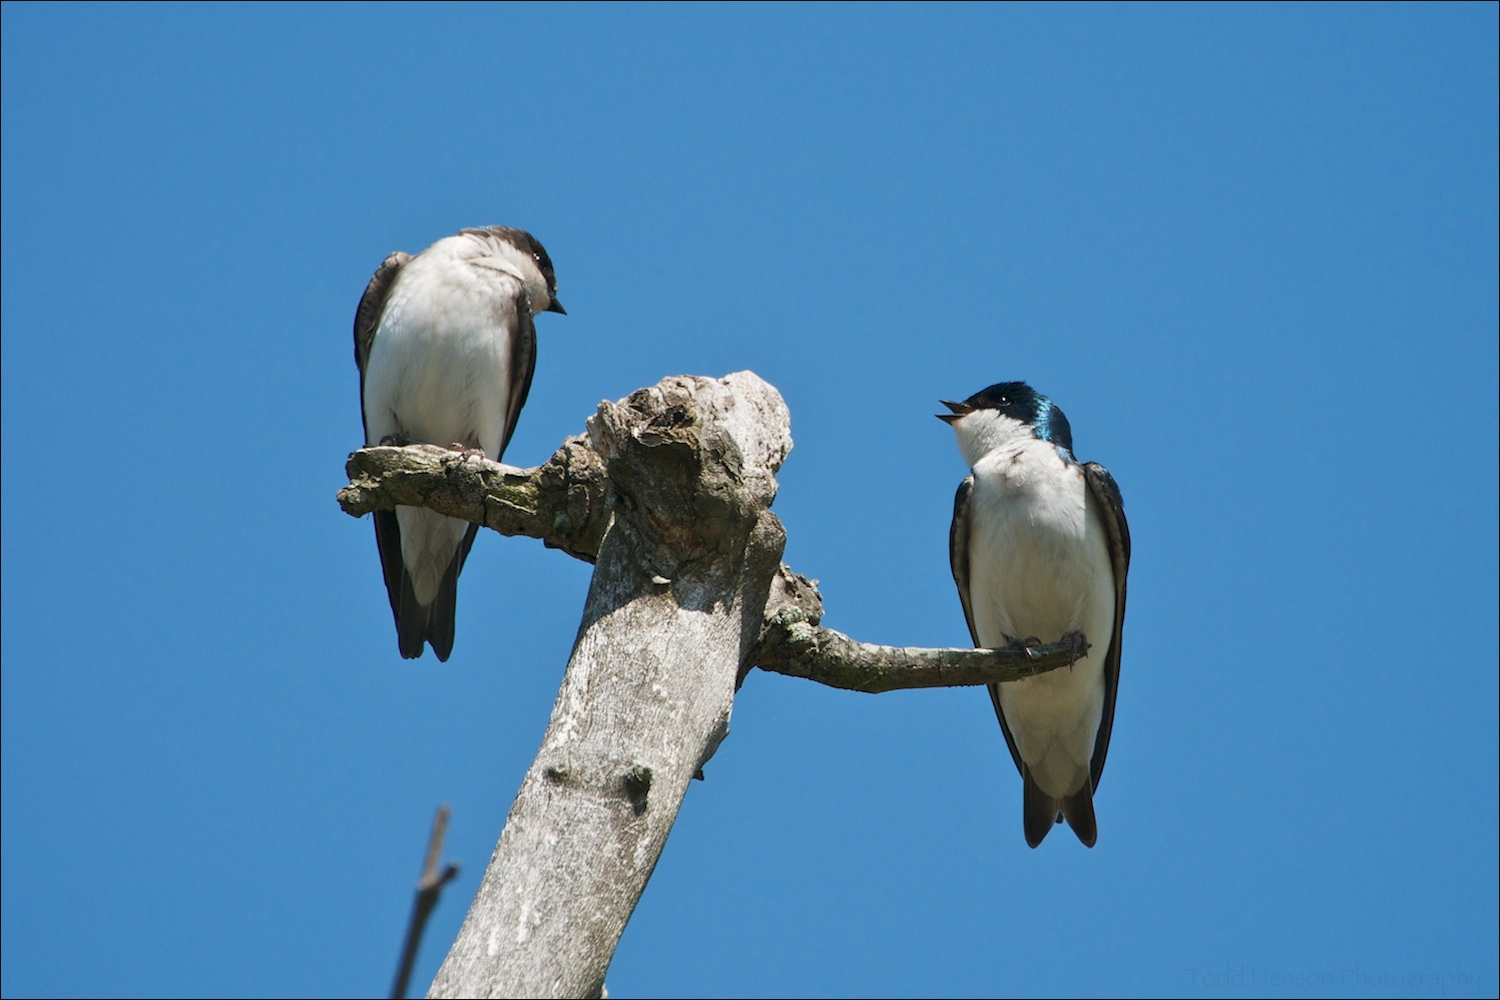 Male (right) and female (left) Tree Swallows